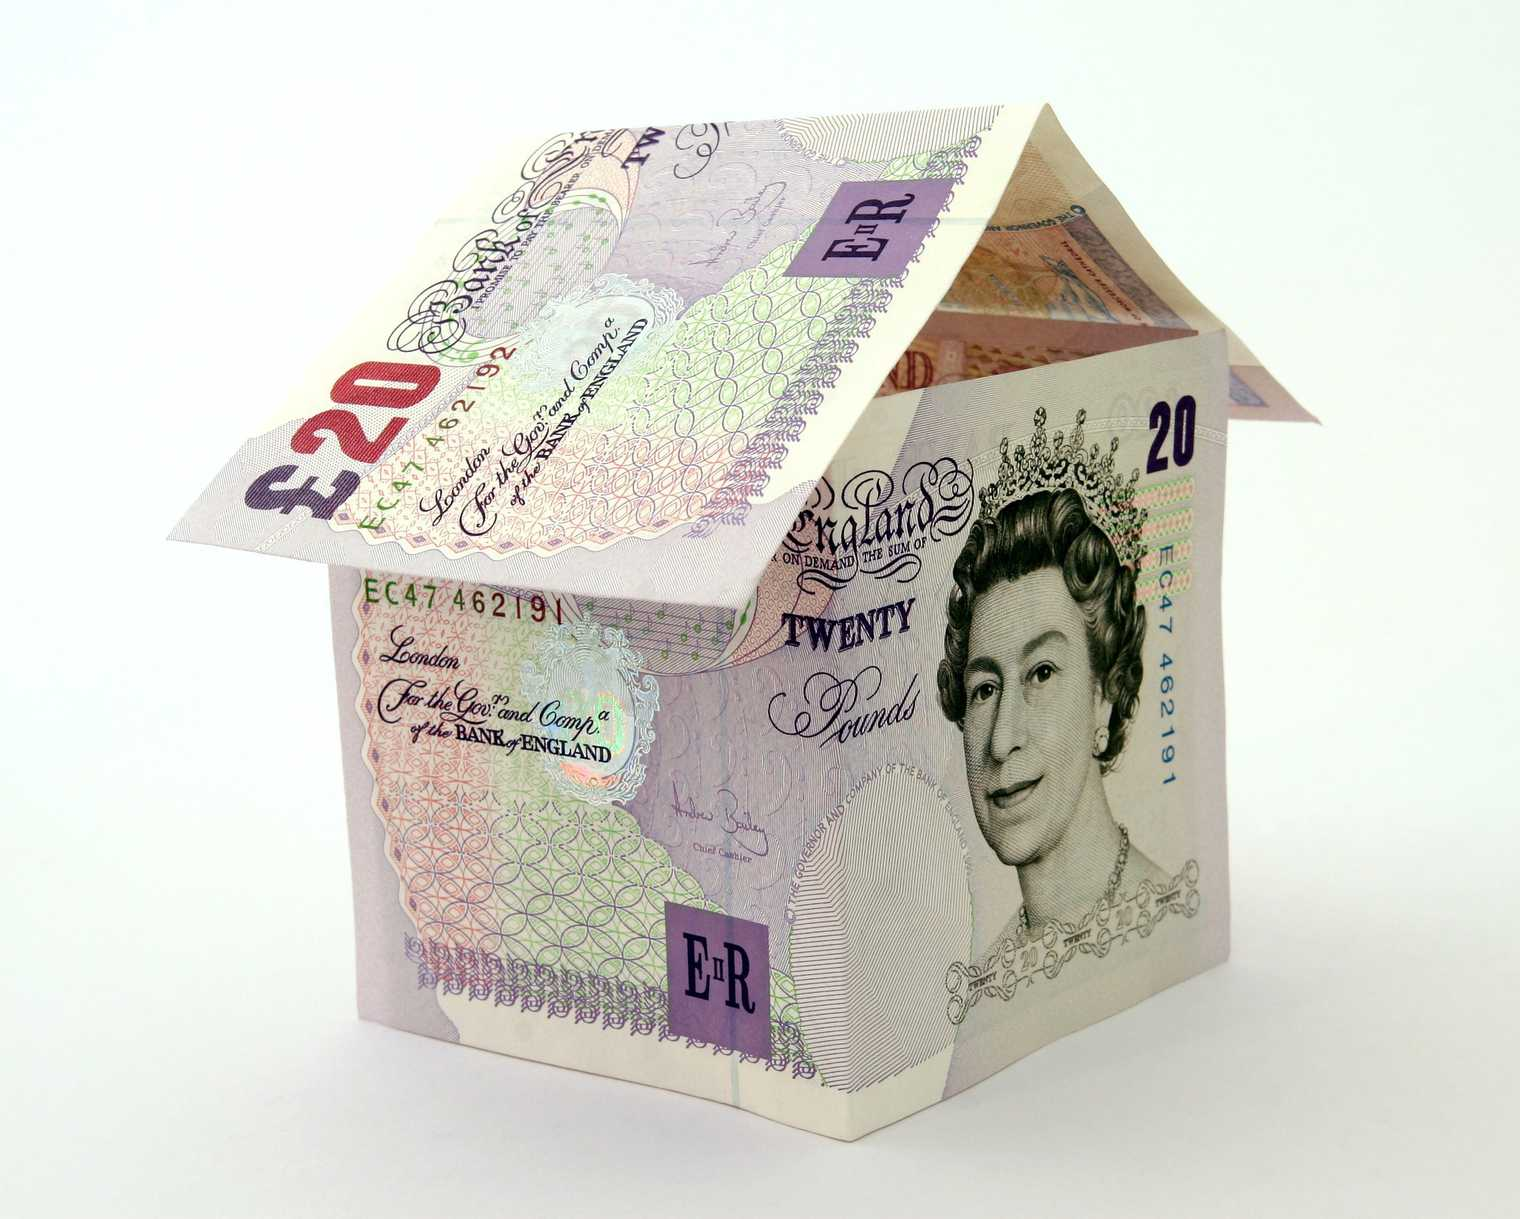 Looking after your estate